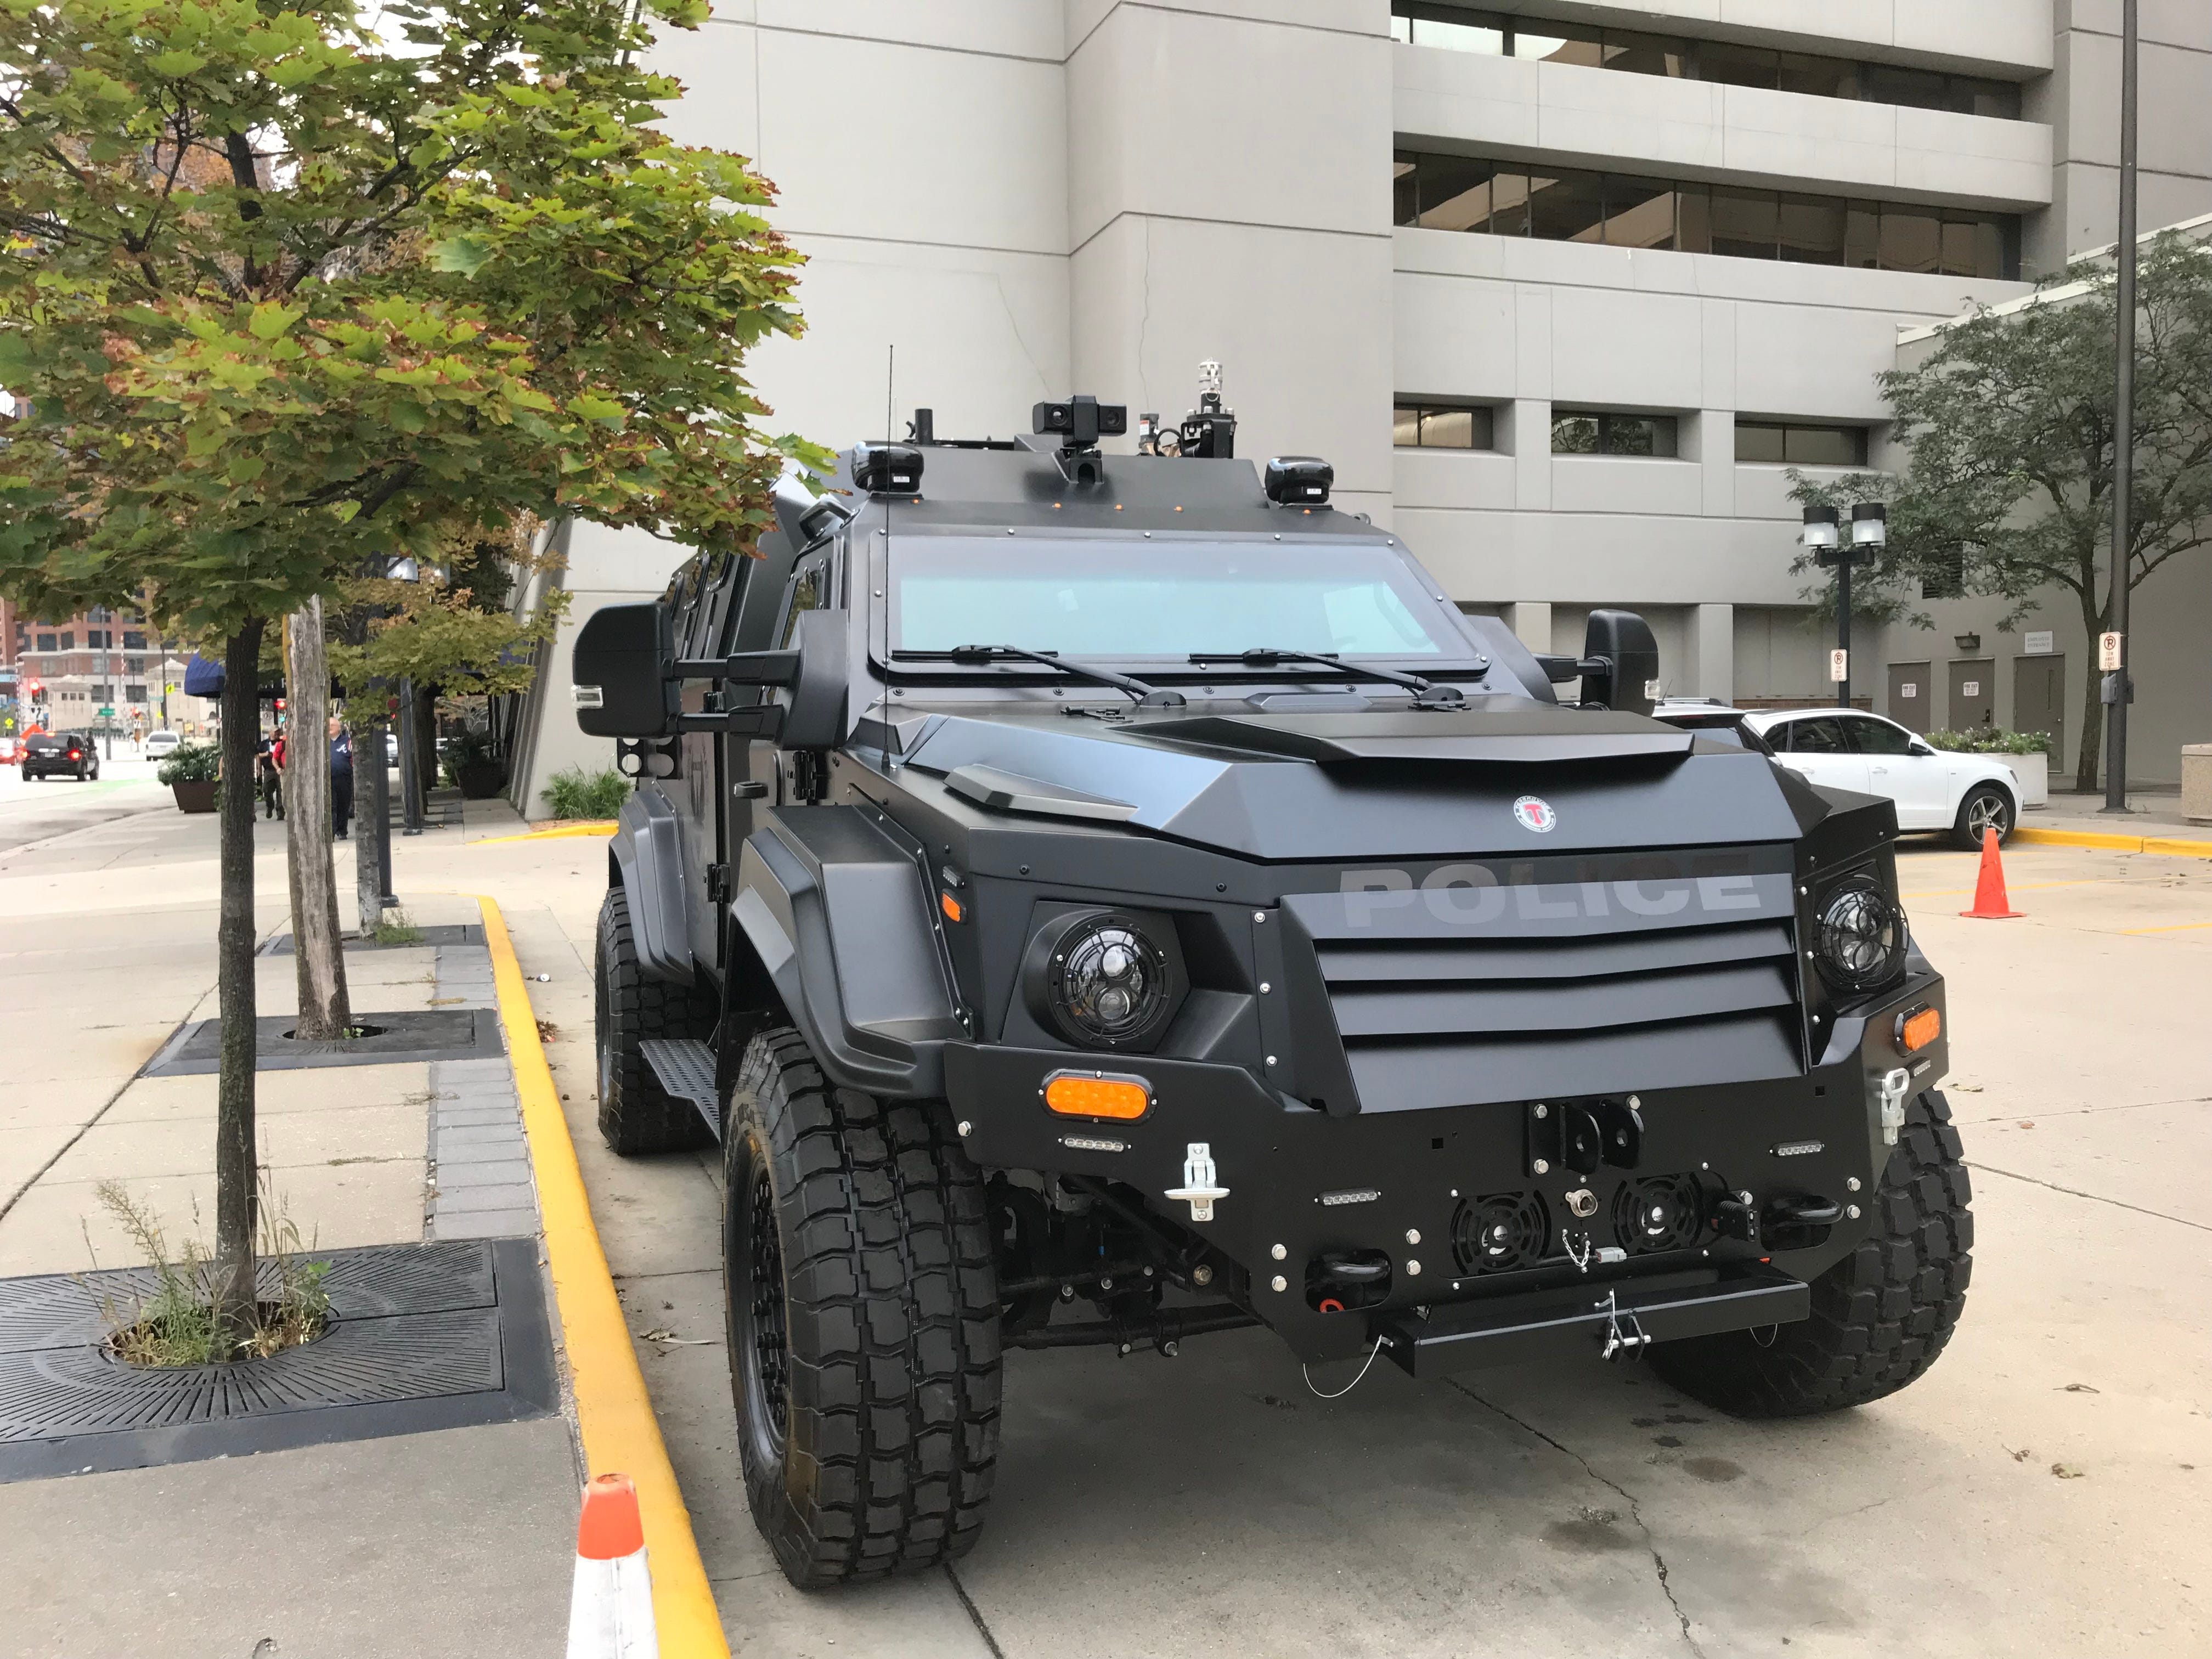 Military vehicles and SWAT teams in downtown Milwaukee? Relax. It's a law enforcement conference | Milwaukee Journal Sentinel